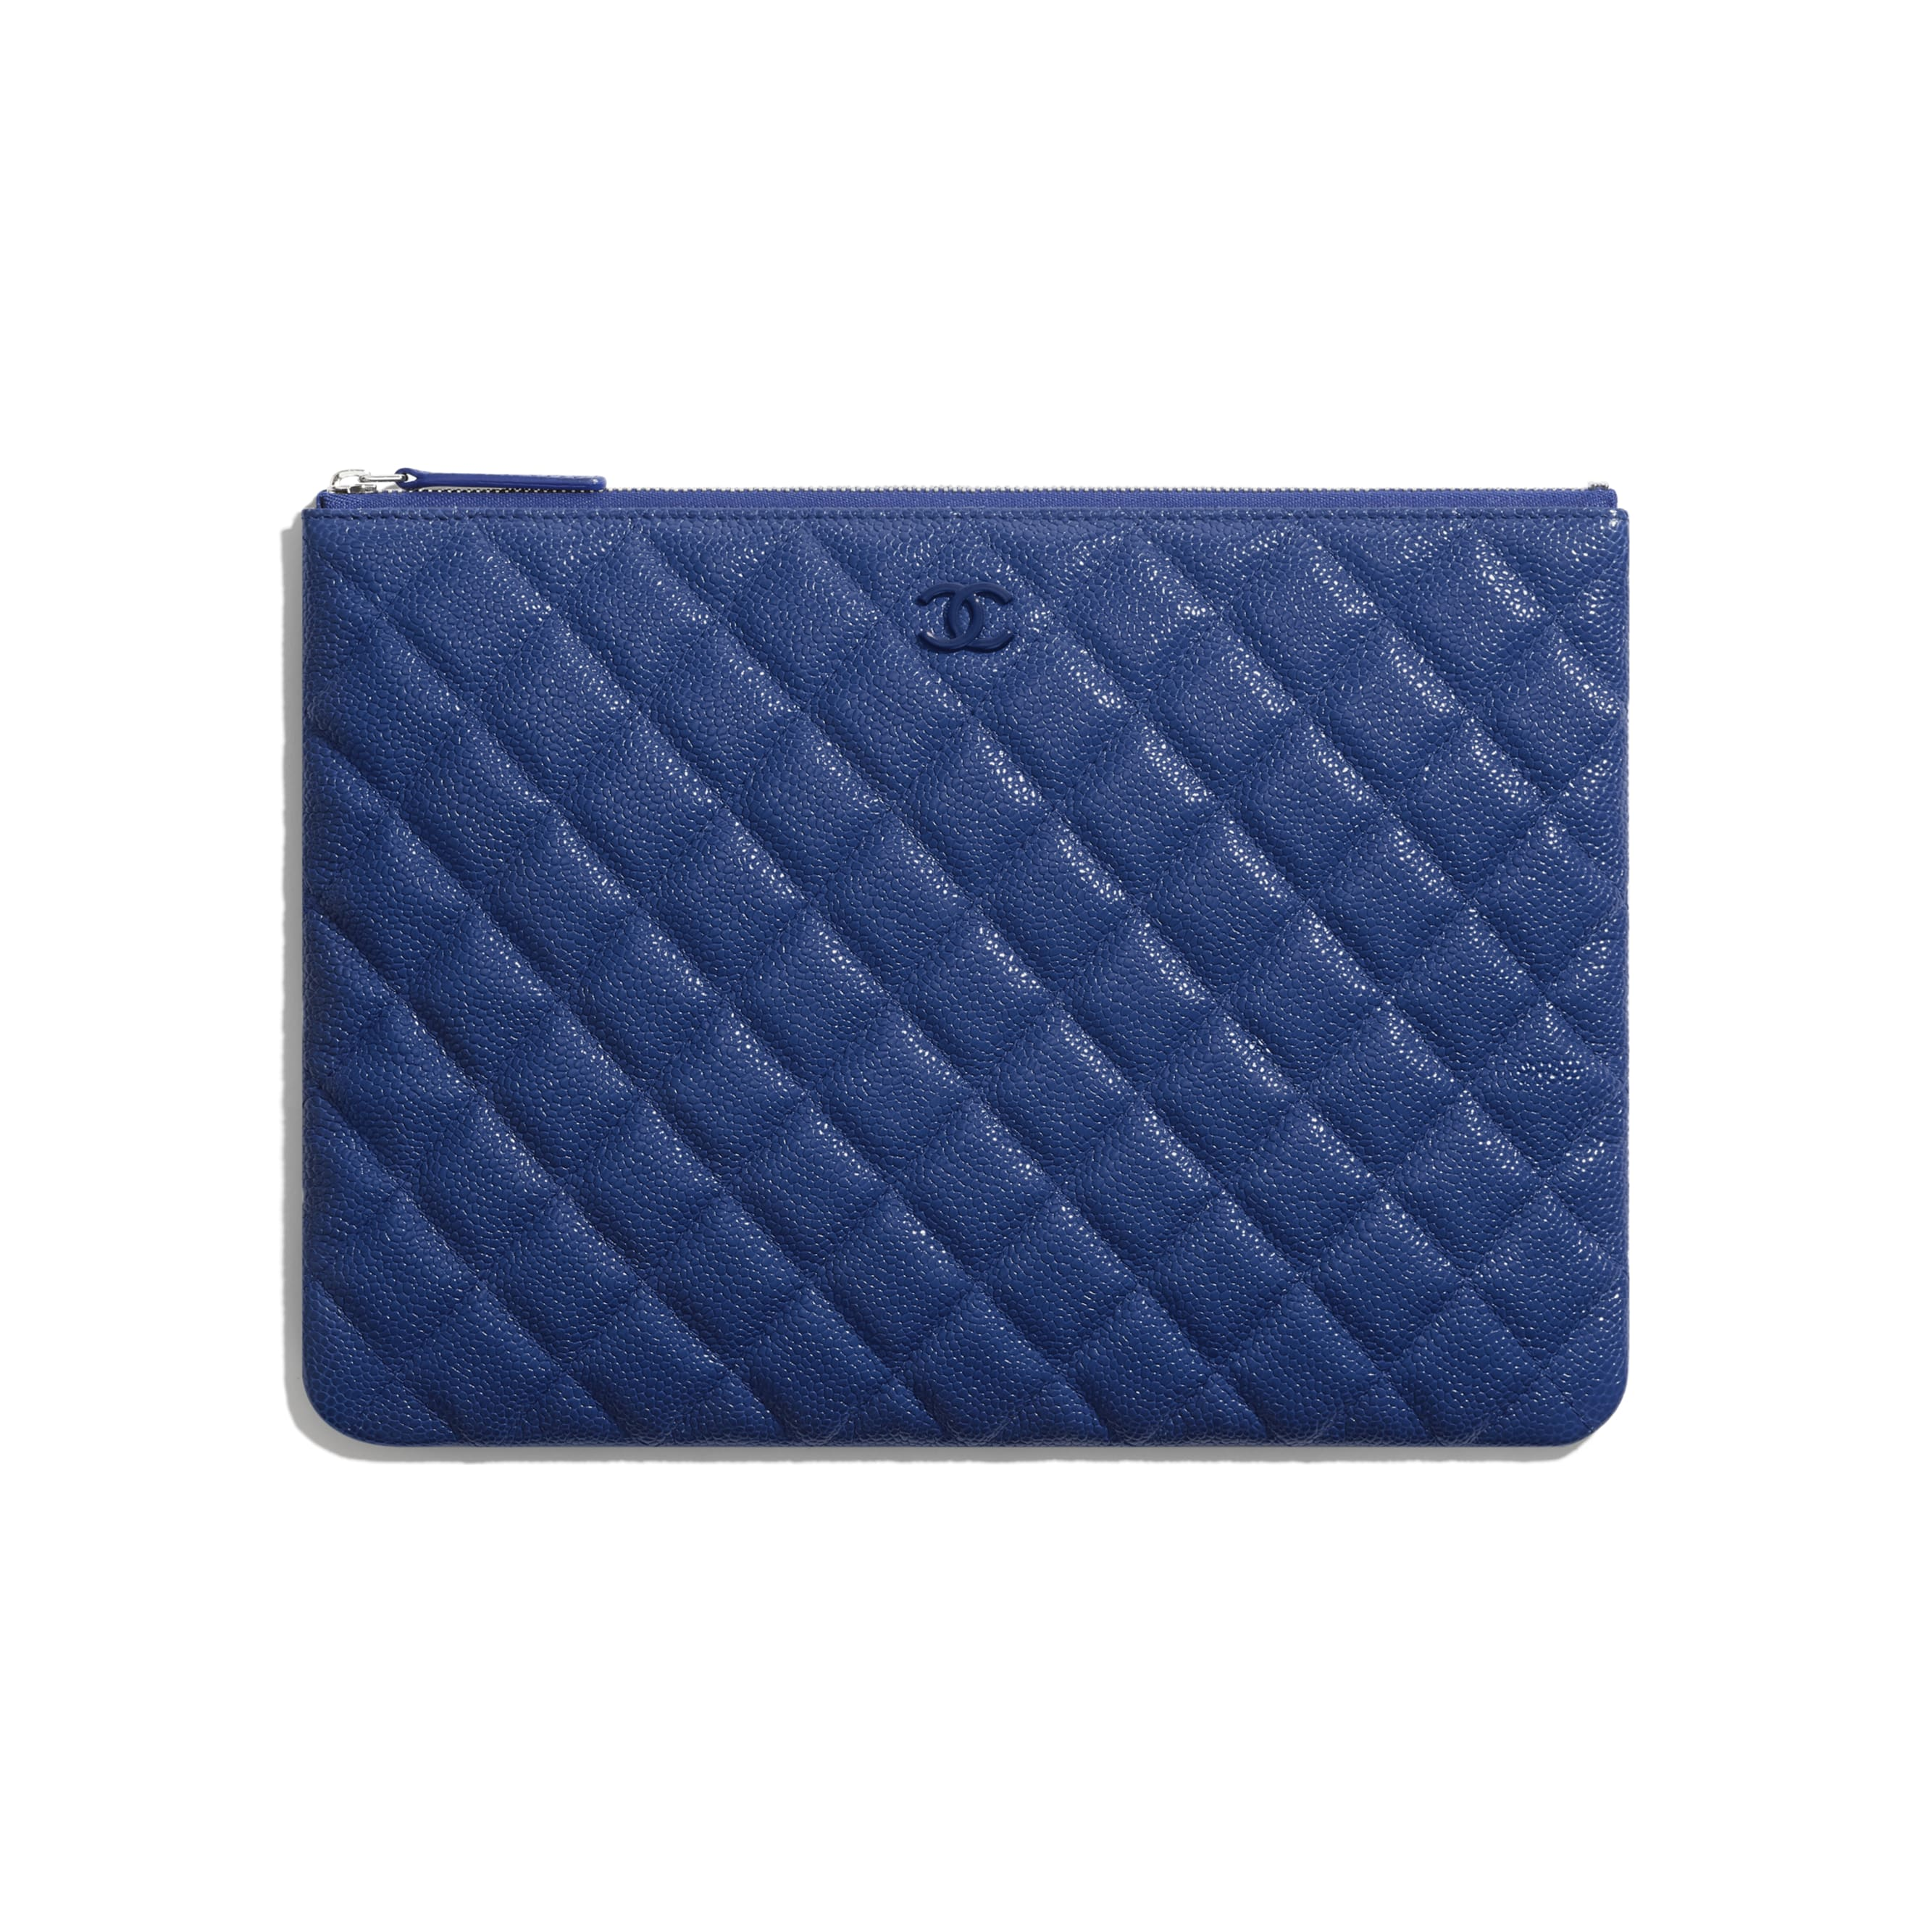 Pouch - Dark Blue - Grained Calfskin & Lacquered Metal - Default view - see standard sized version